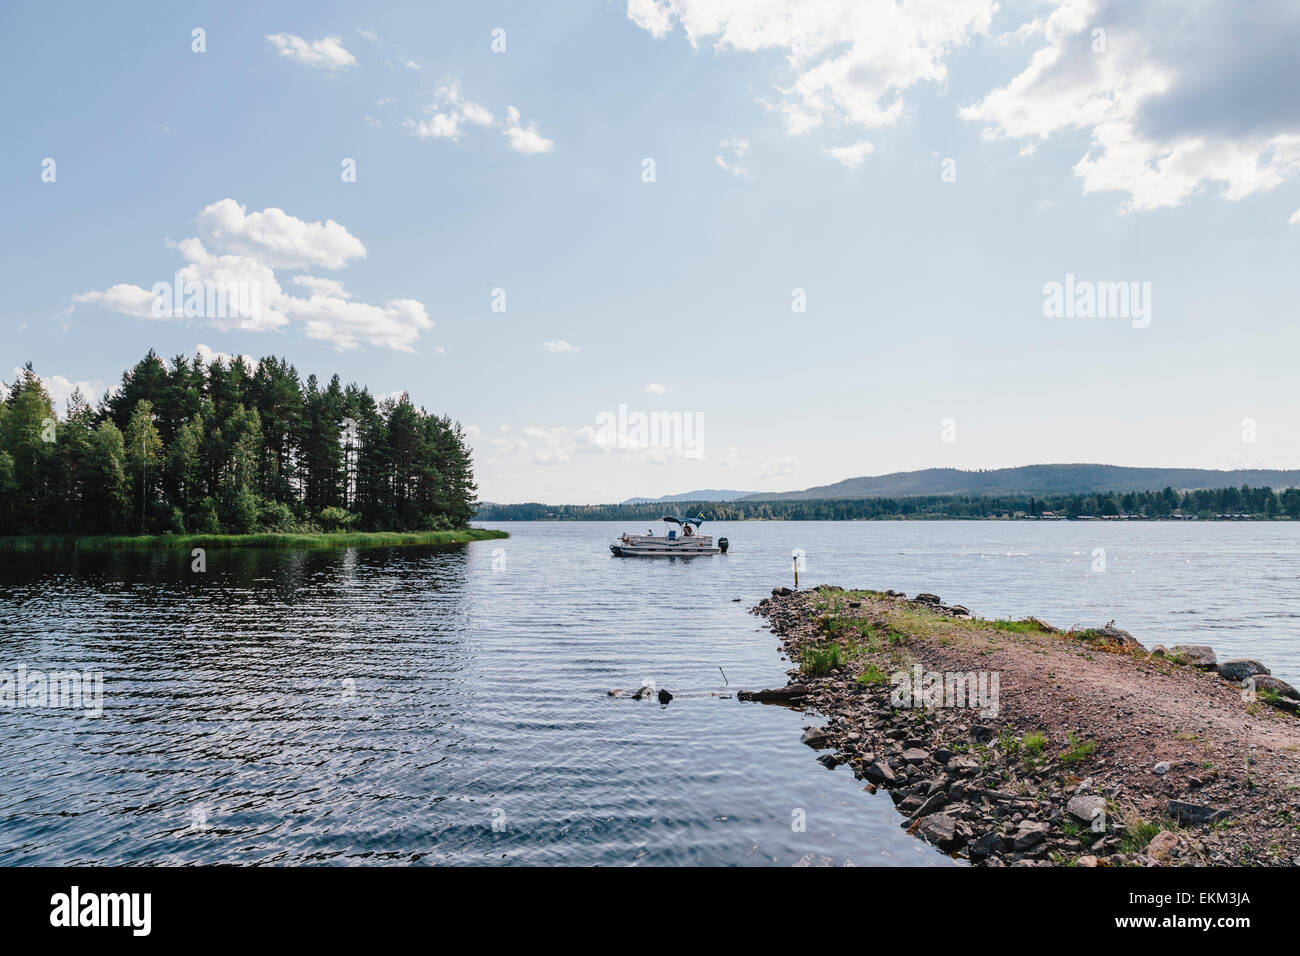 Lake Siljan in Mora, Dalarna County, Sweden - Stock Image